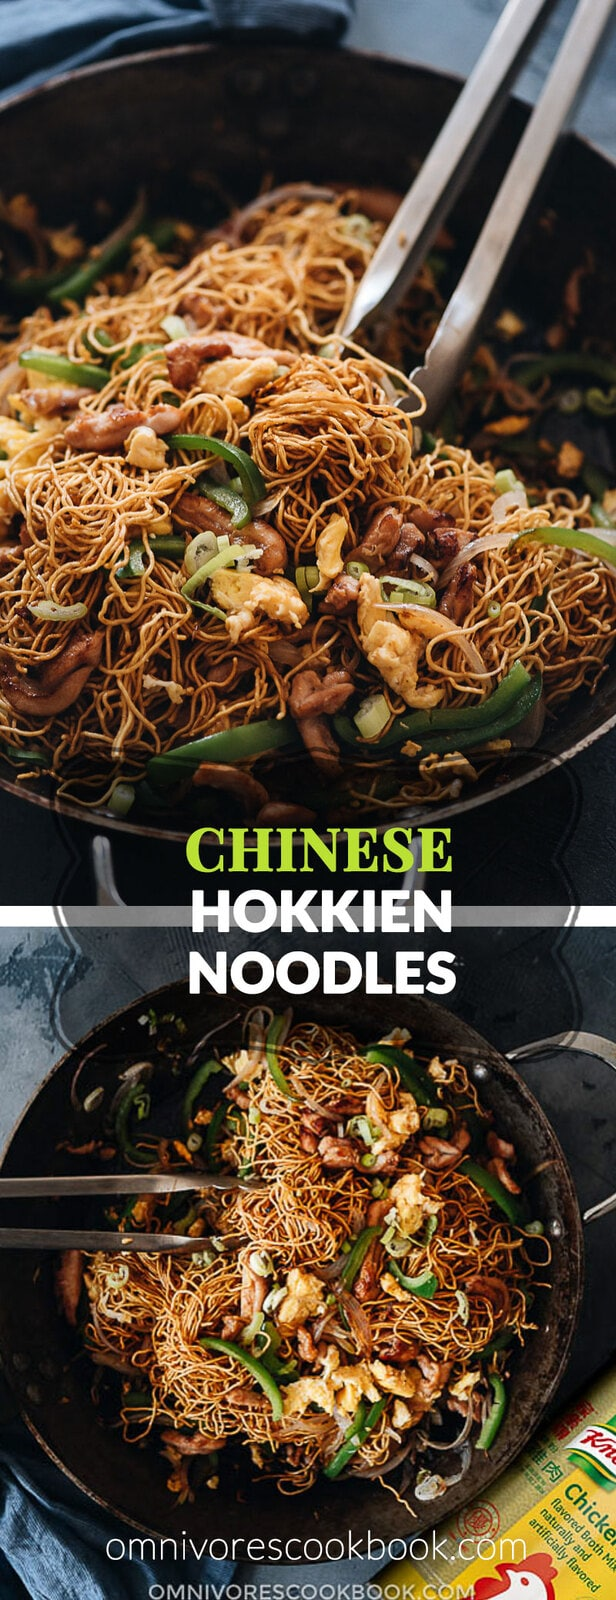 Hokkien Noodles (福建炒面, Hokkien Mee) - A super rich and fragrant one-pan meal that contains tender chicken bites, crispy veggies, and tender noodles. Learn how to make these easy restaurant-style fried noodles without a wok!